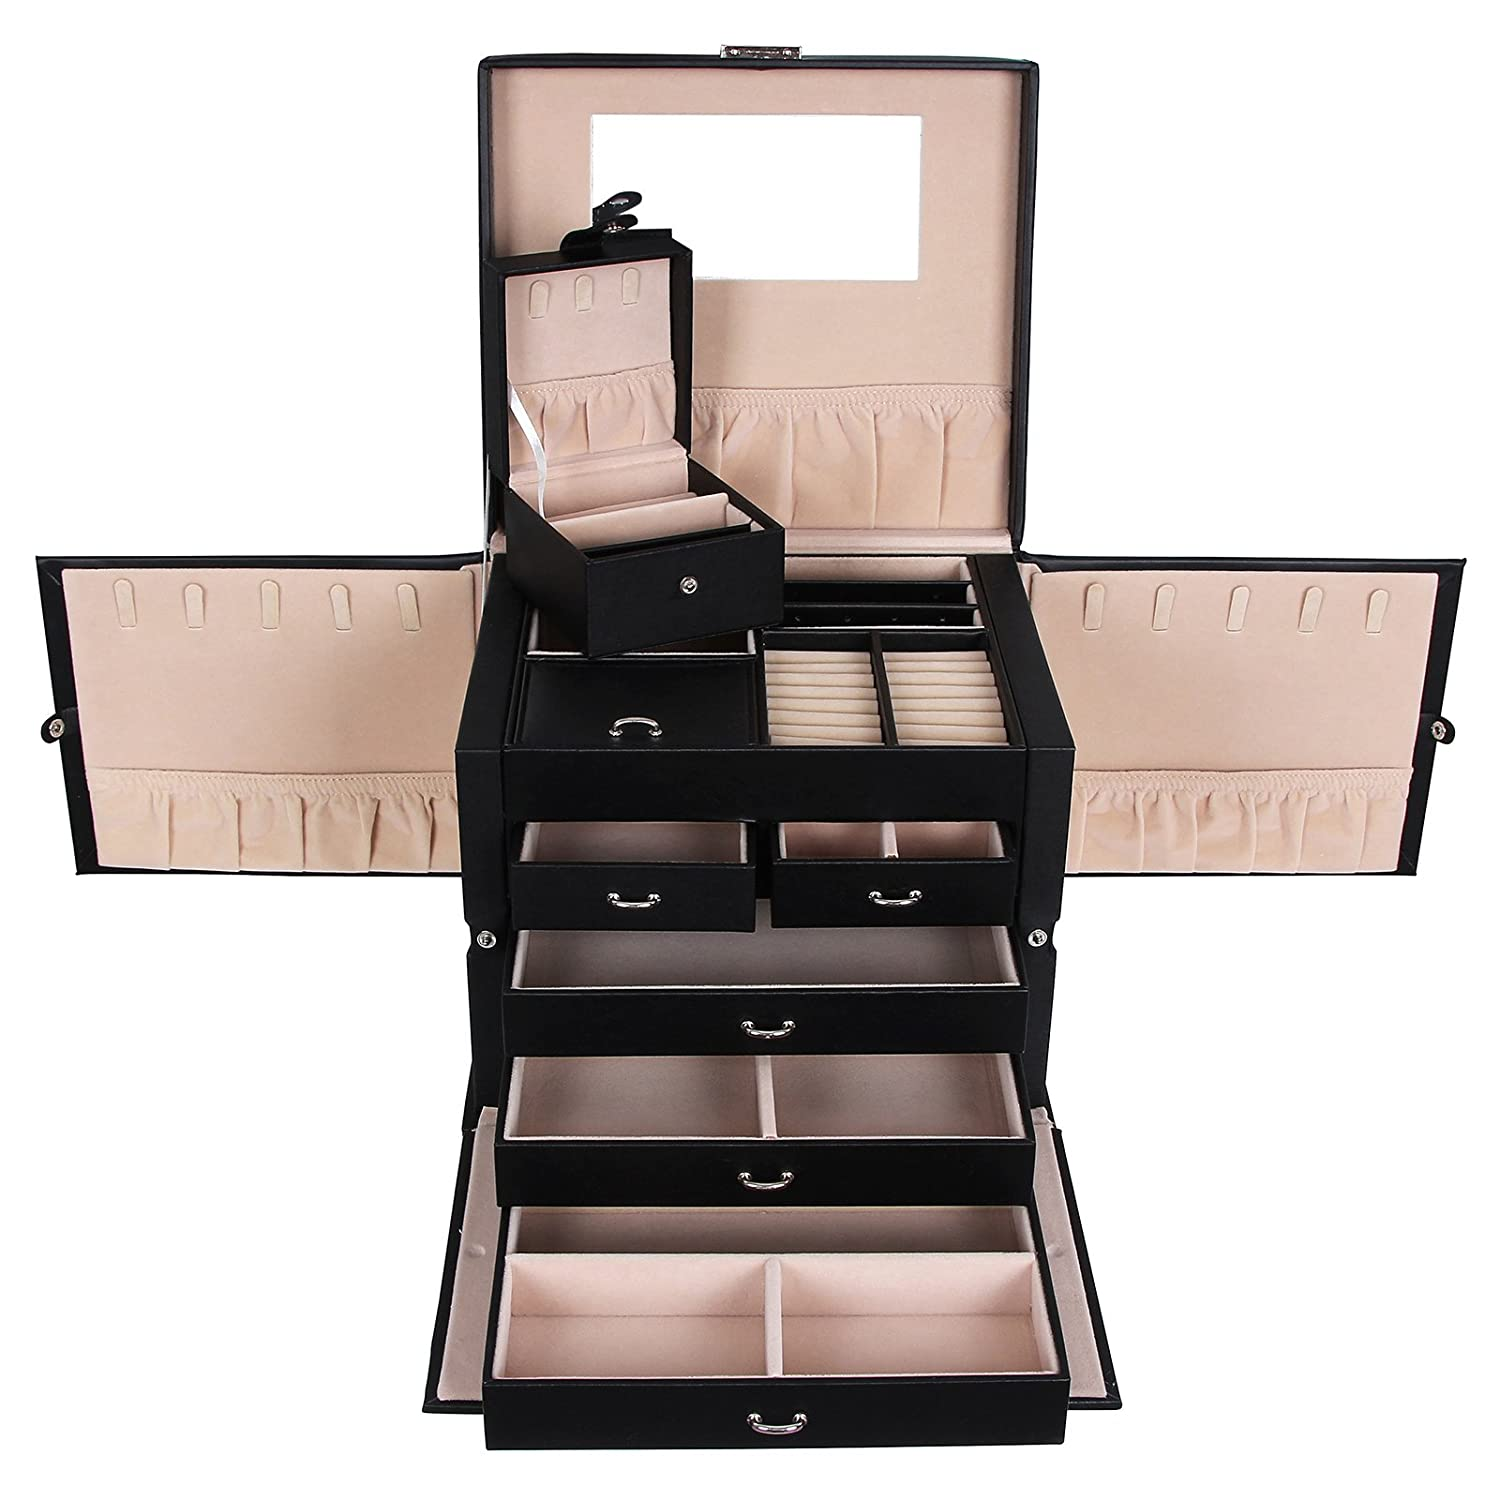 coffret a bijoux moderne soldes compactor grand coffret noir pour maquillage et bijoux with. Black Bedroom Furniture Sets. Home Design Ideas